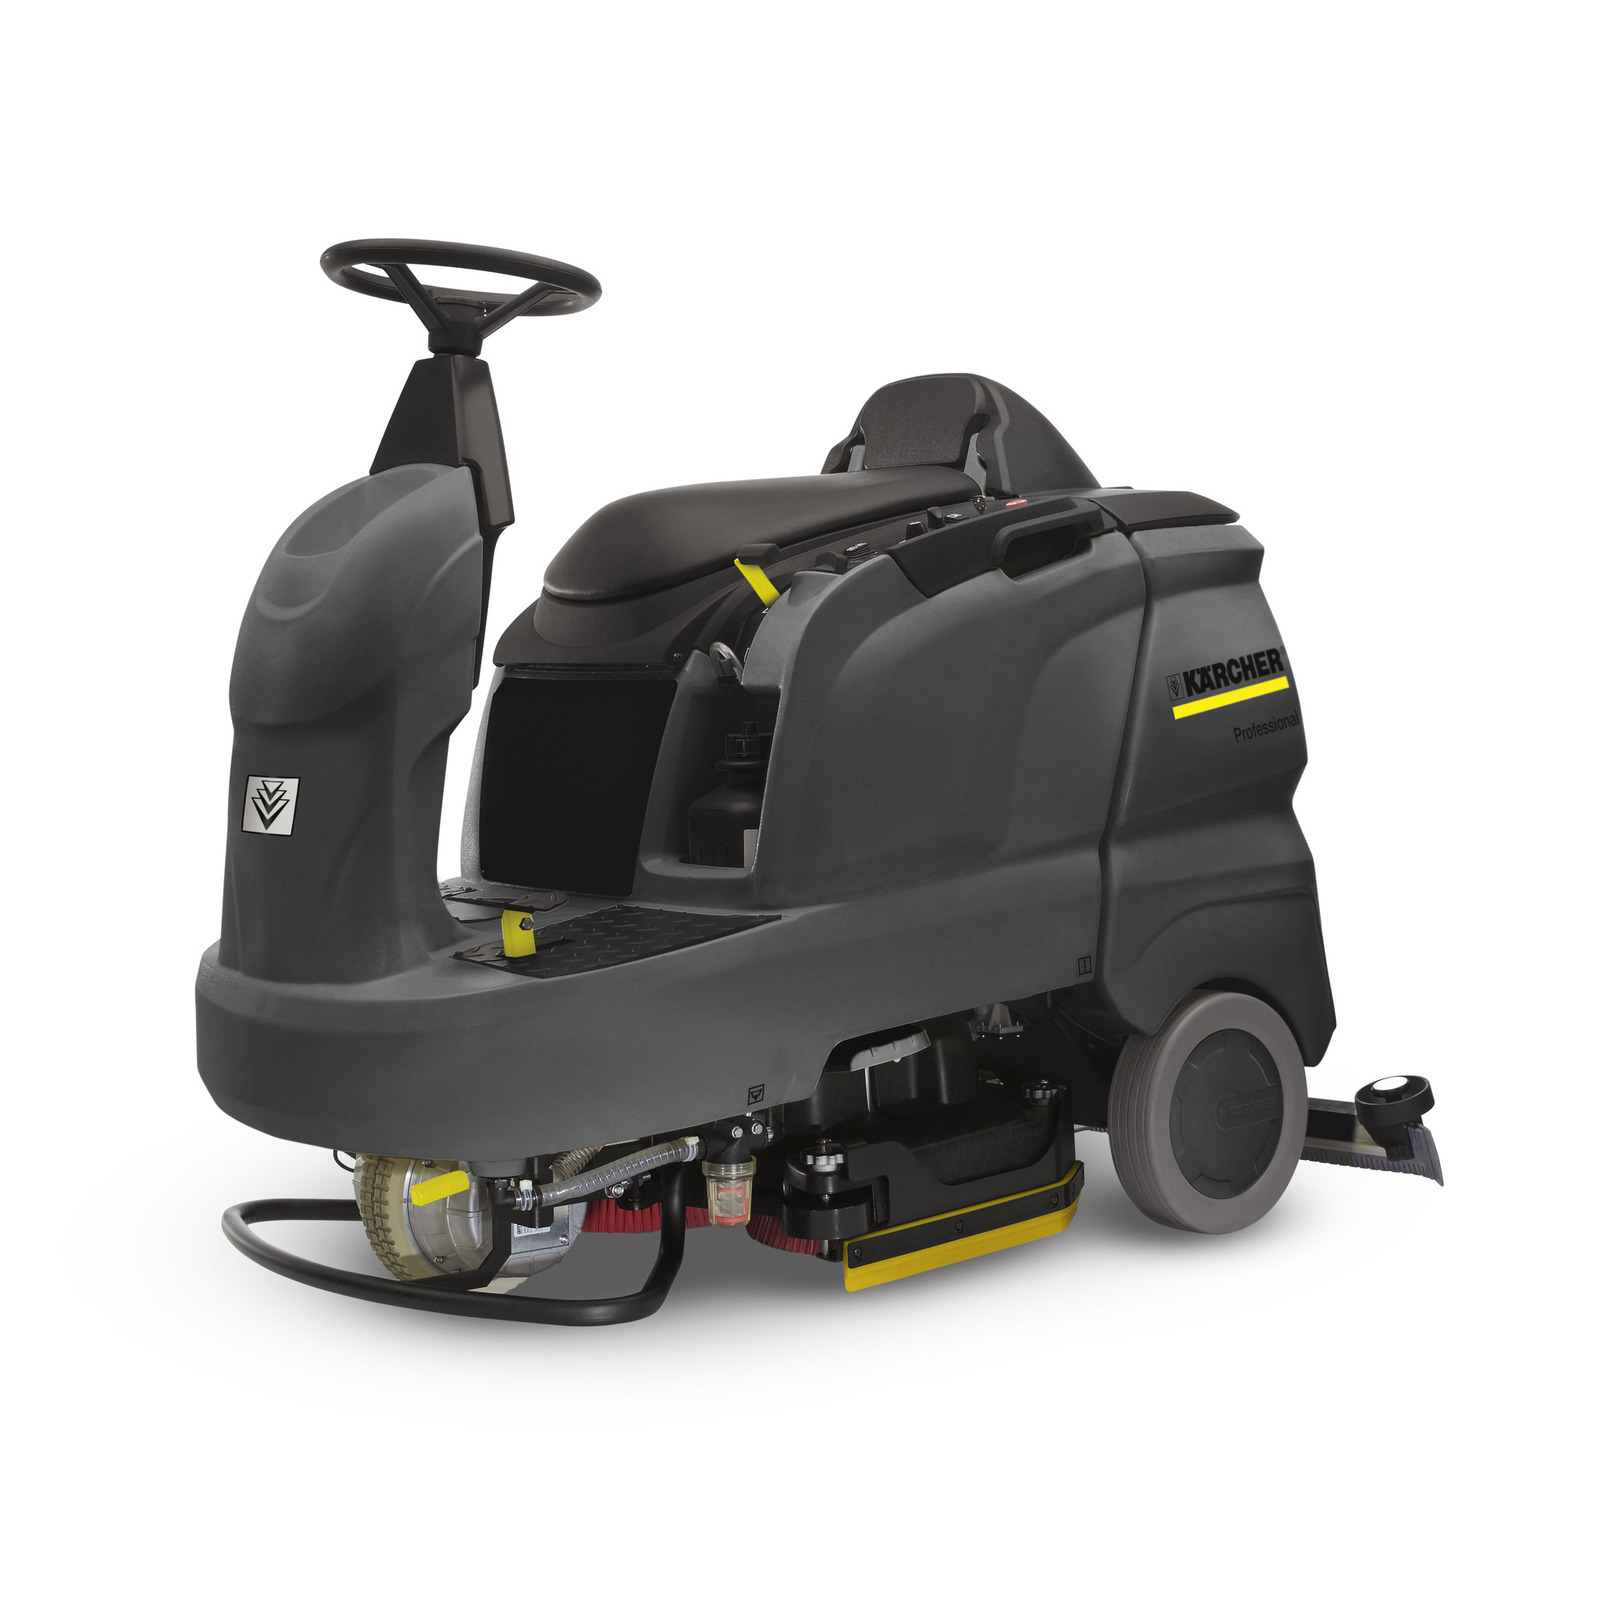 1.161-307.0_B90 Scrubber Drier-Karcher Dealers in UAE